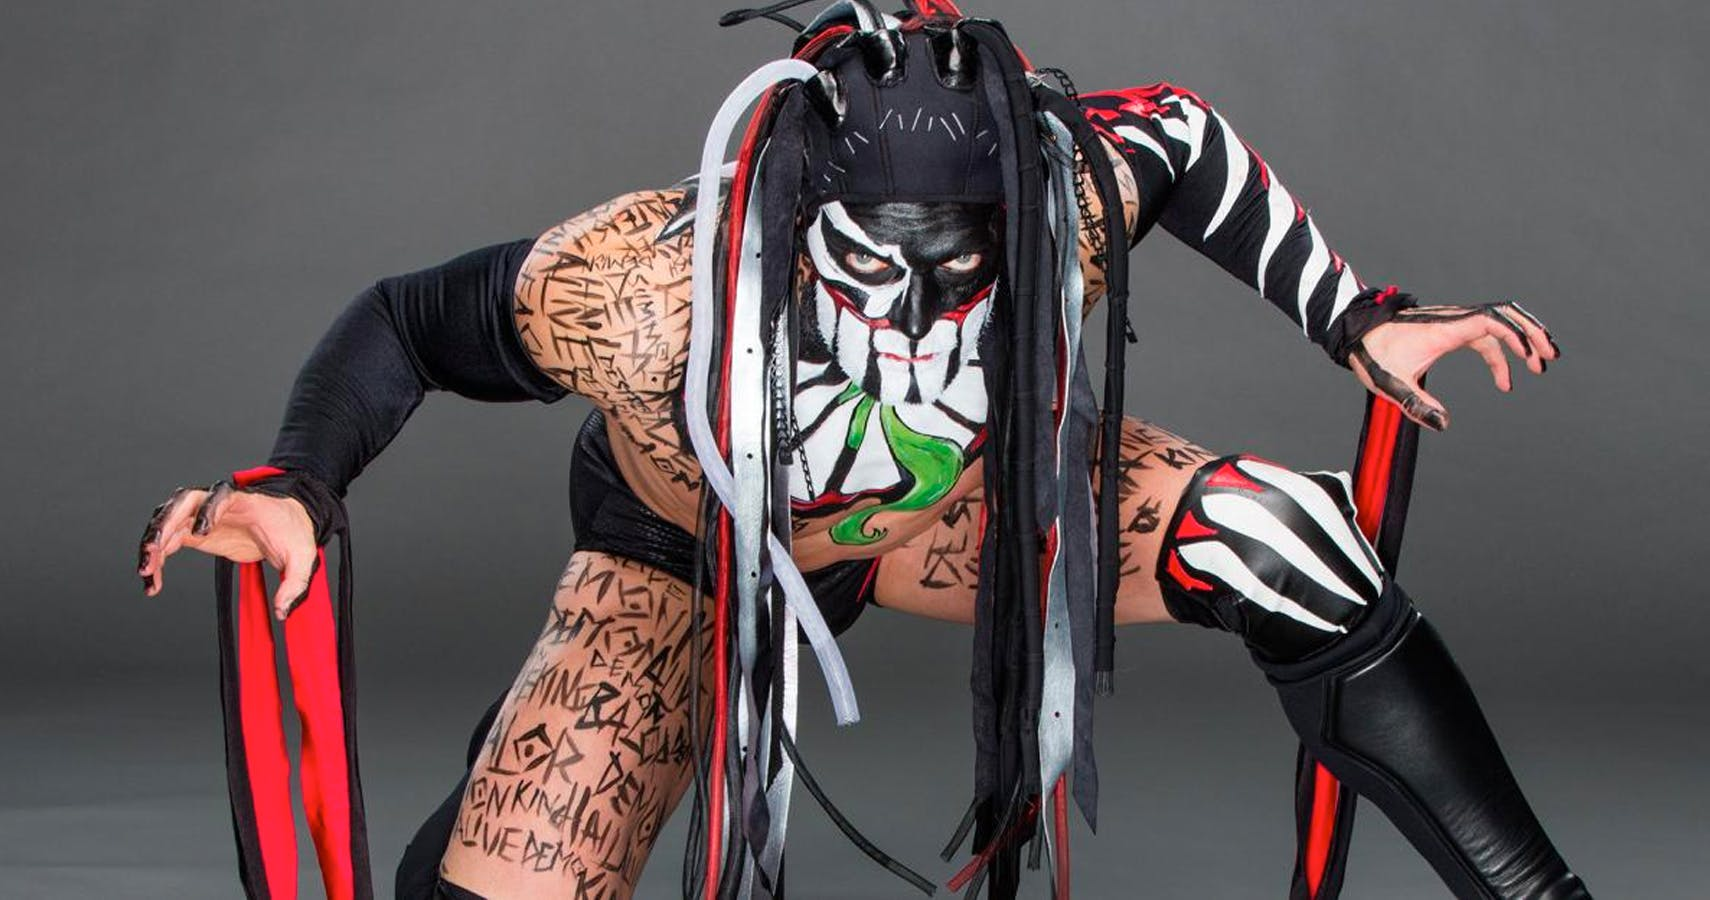 Finn Balor's 'Demon' Character Isn't Working Anymore - The